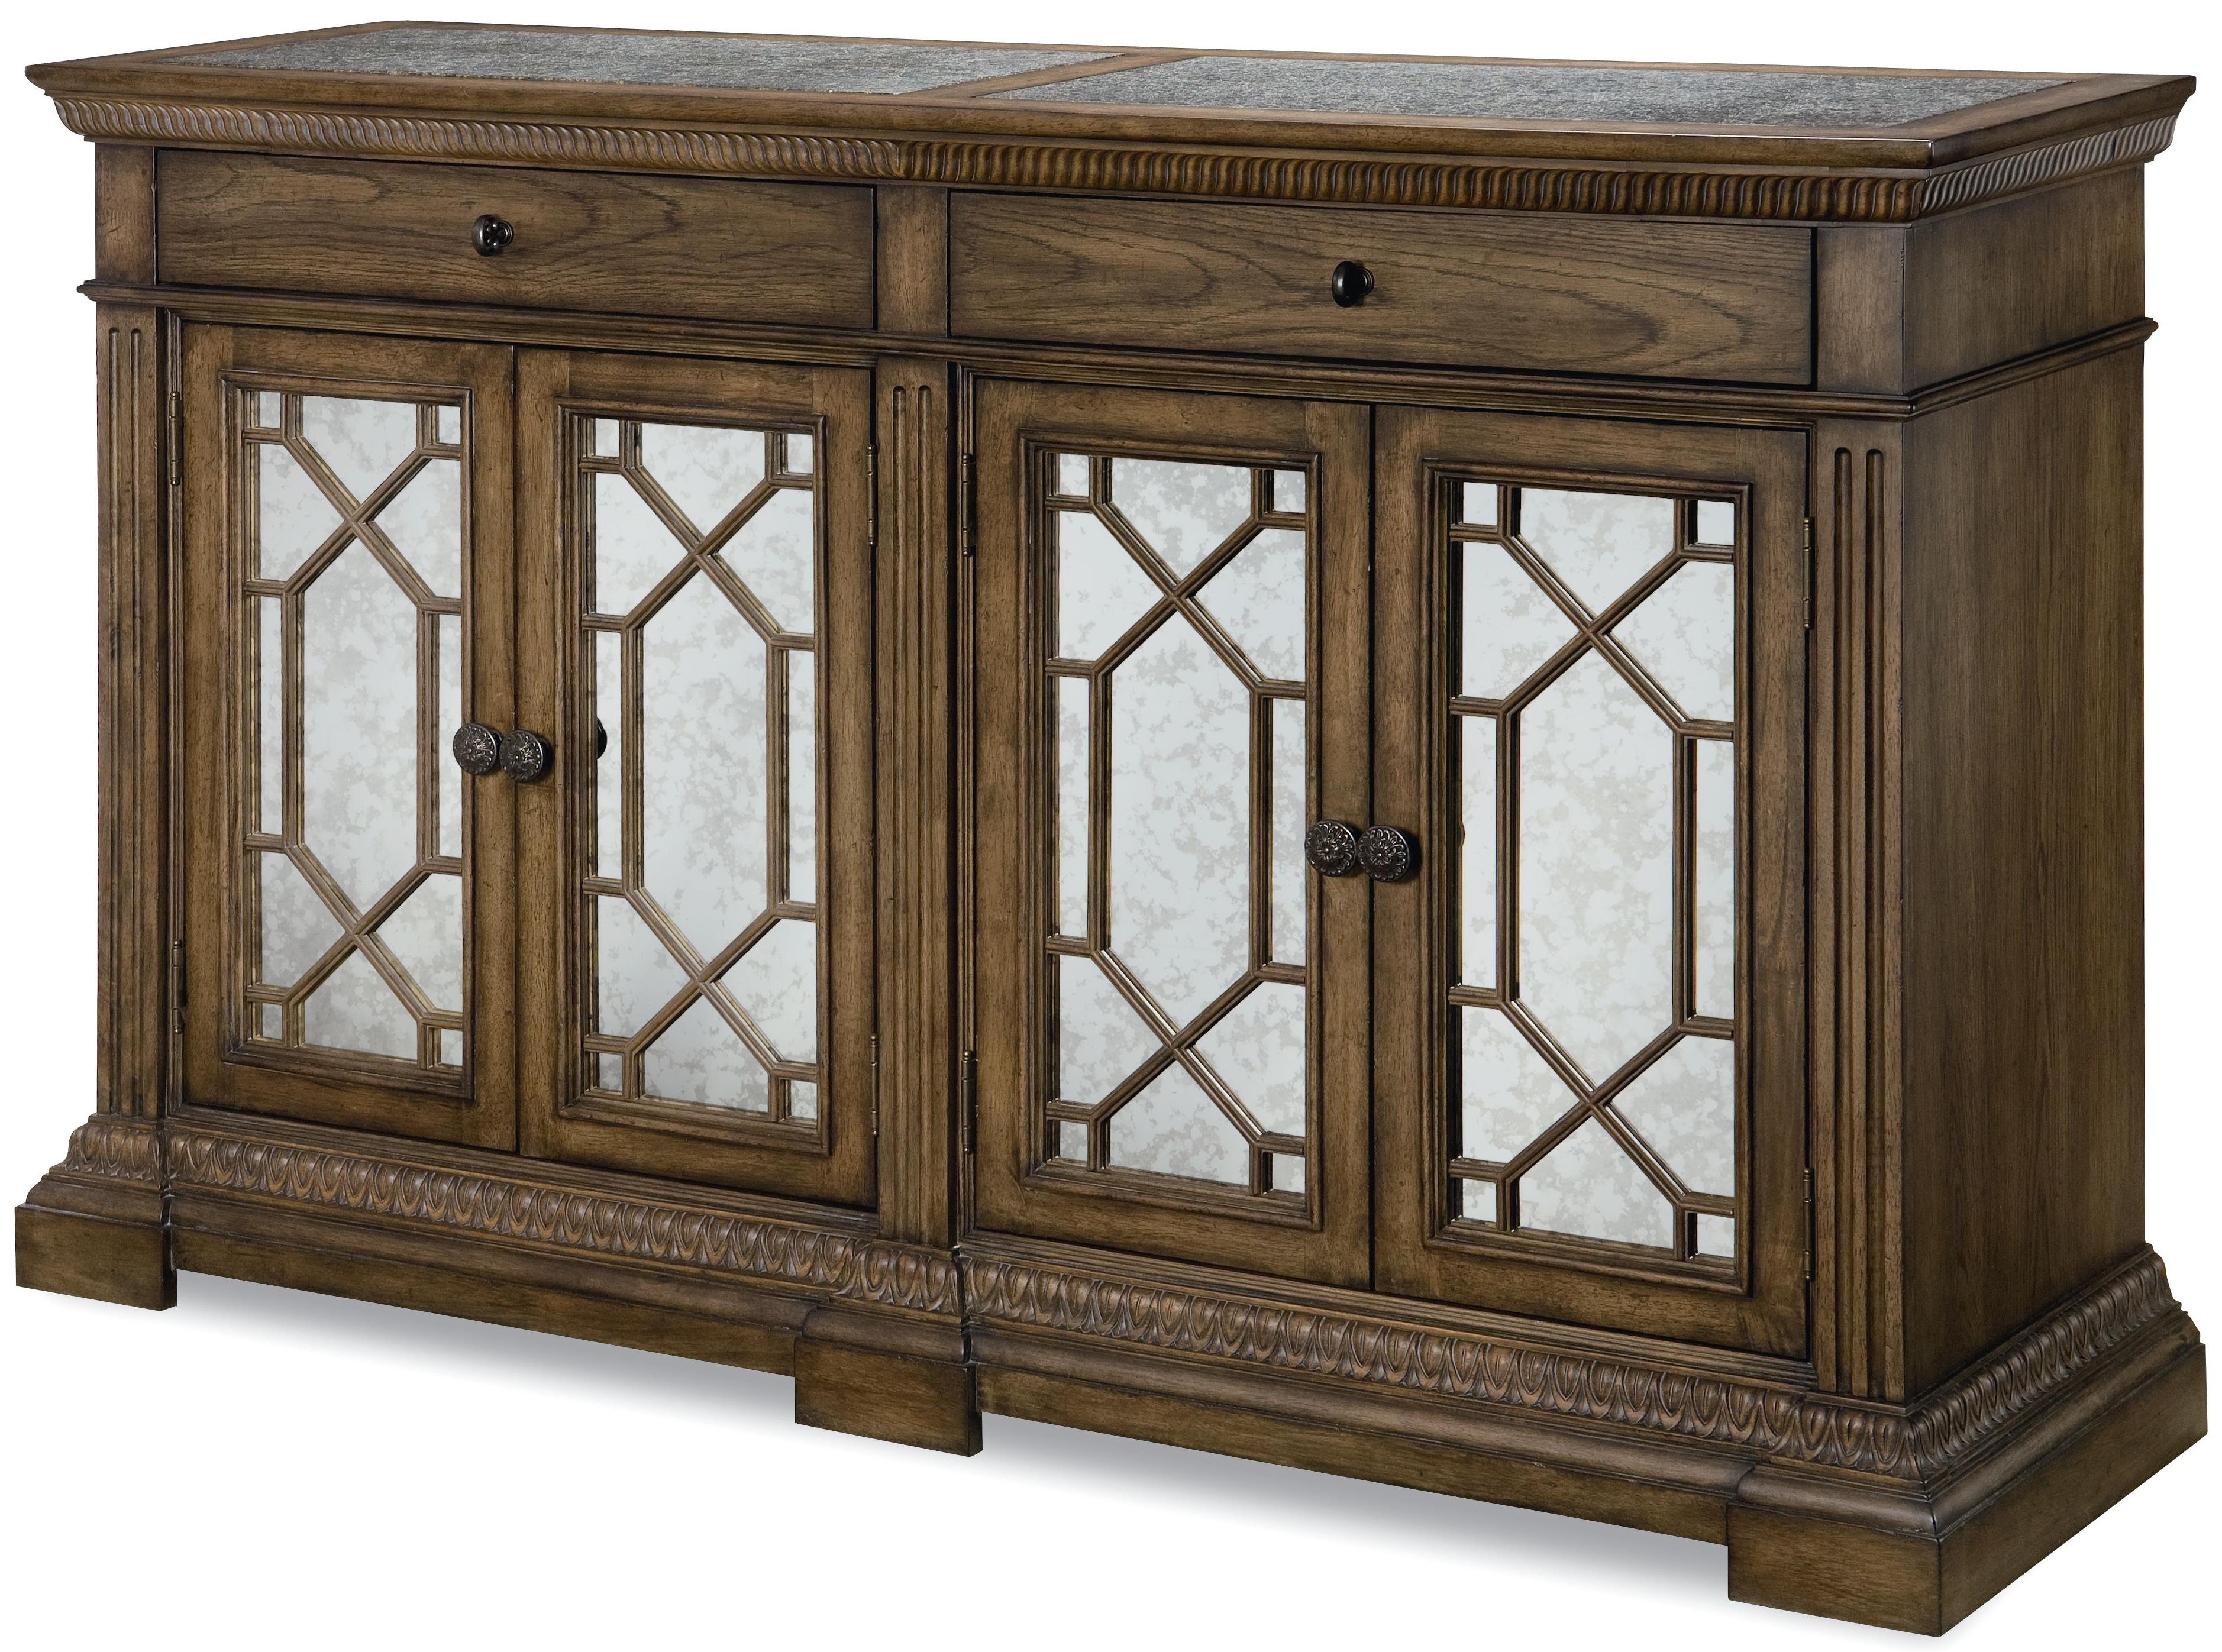 Legacy Classic Renaissance Credenza with Marble Top - Item Number: 5500-151